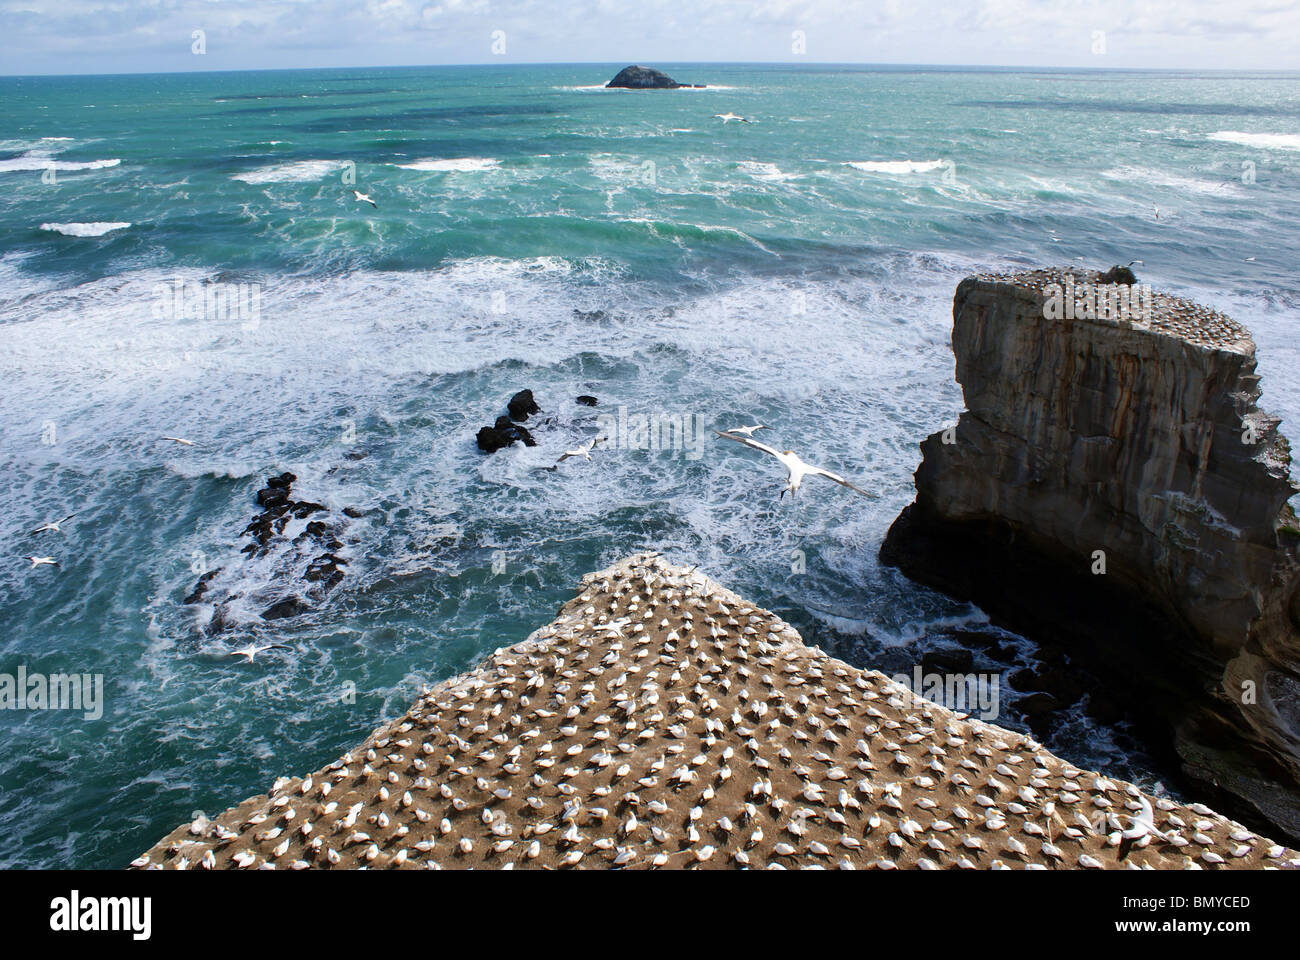 Gannet colony at Muriwai Beach, Auckland, New Zealand - Stock Image